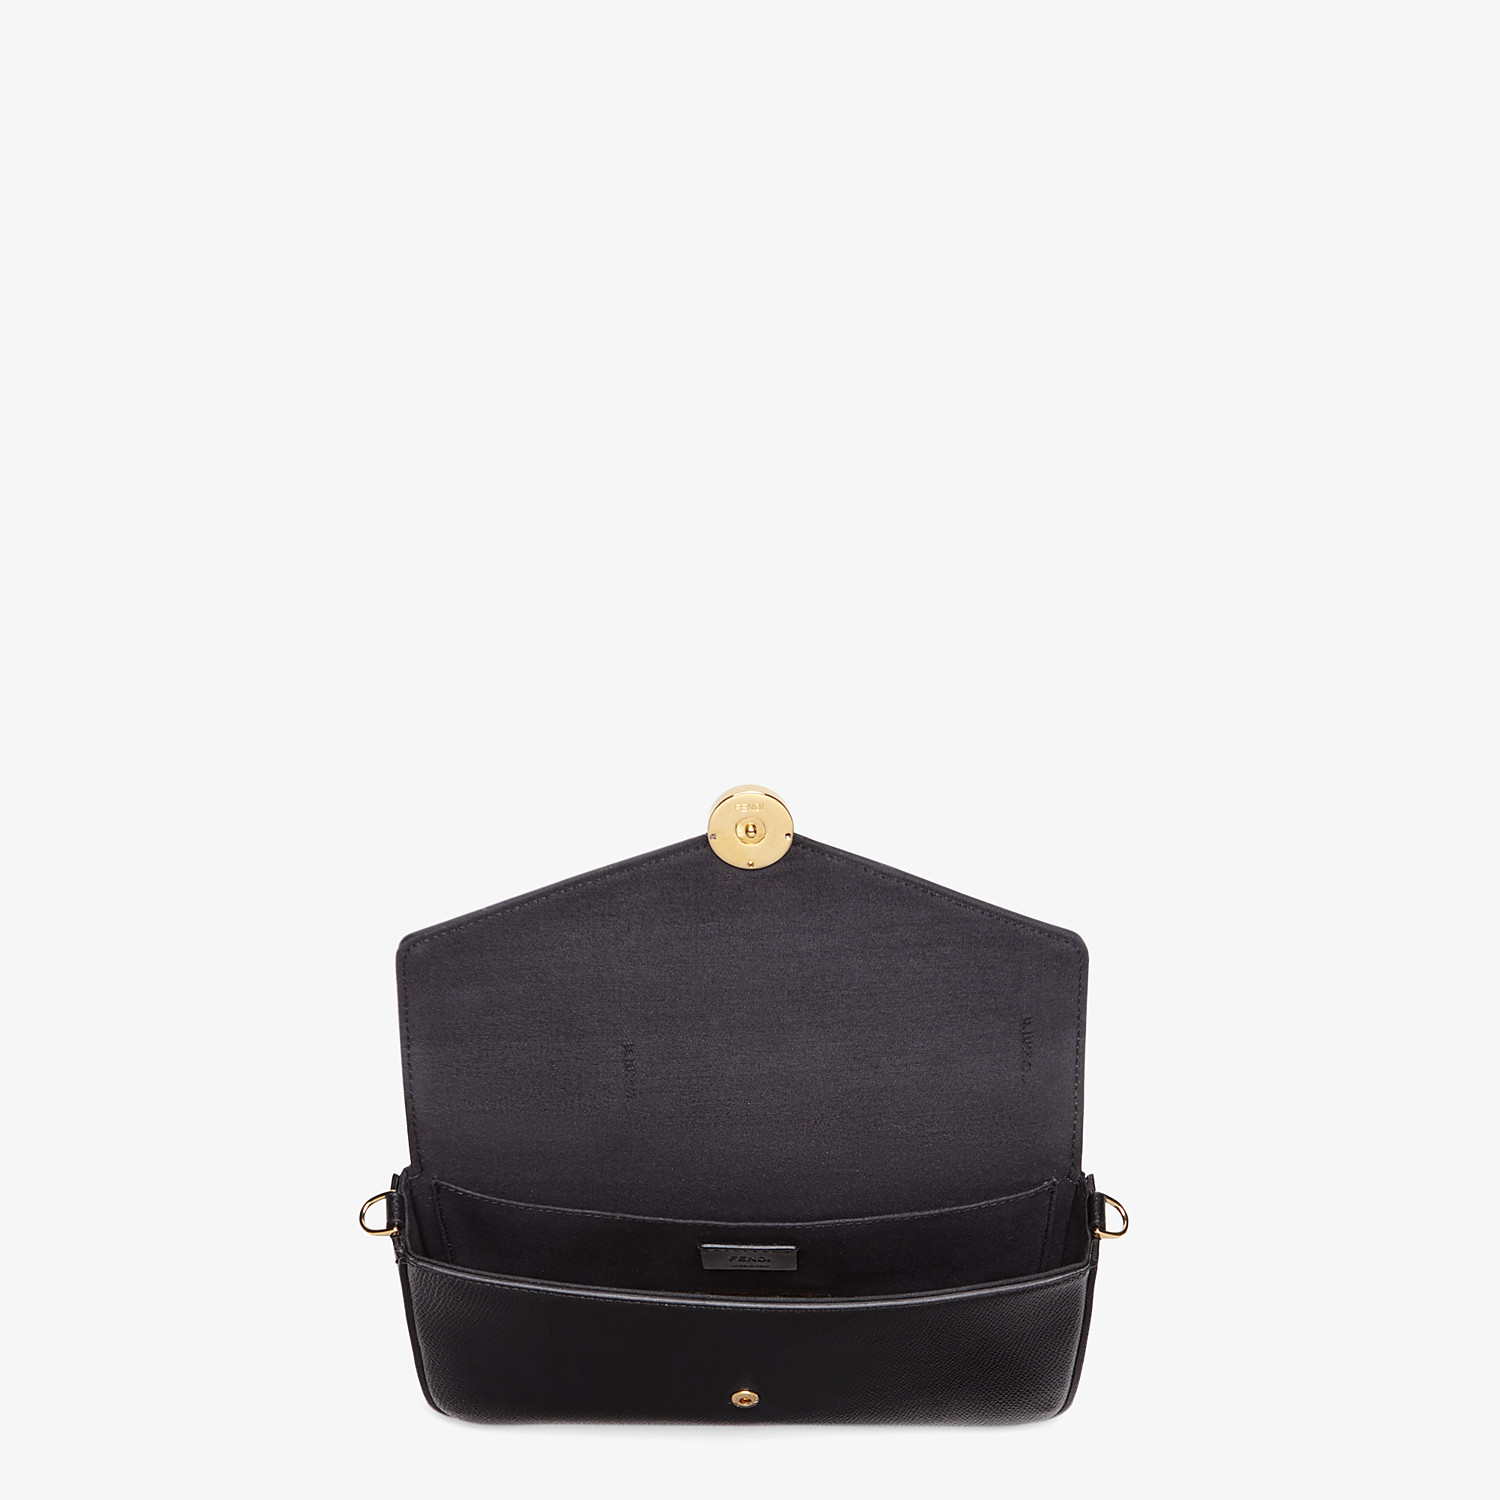 FENDI WALLET ON CHAIN WITH POUCHES - Black leather mini-bag - view 5 detail